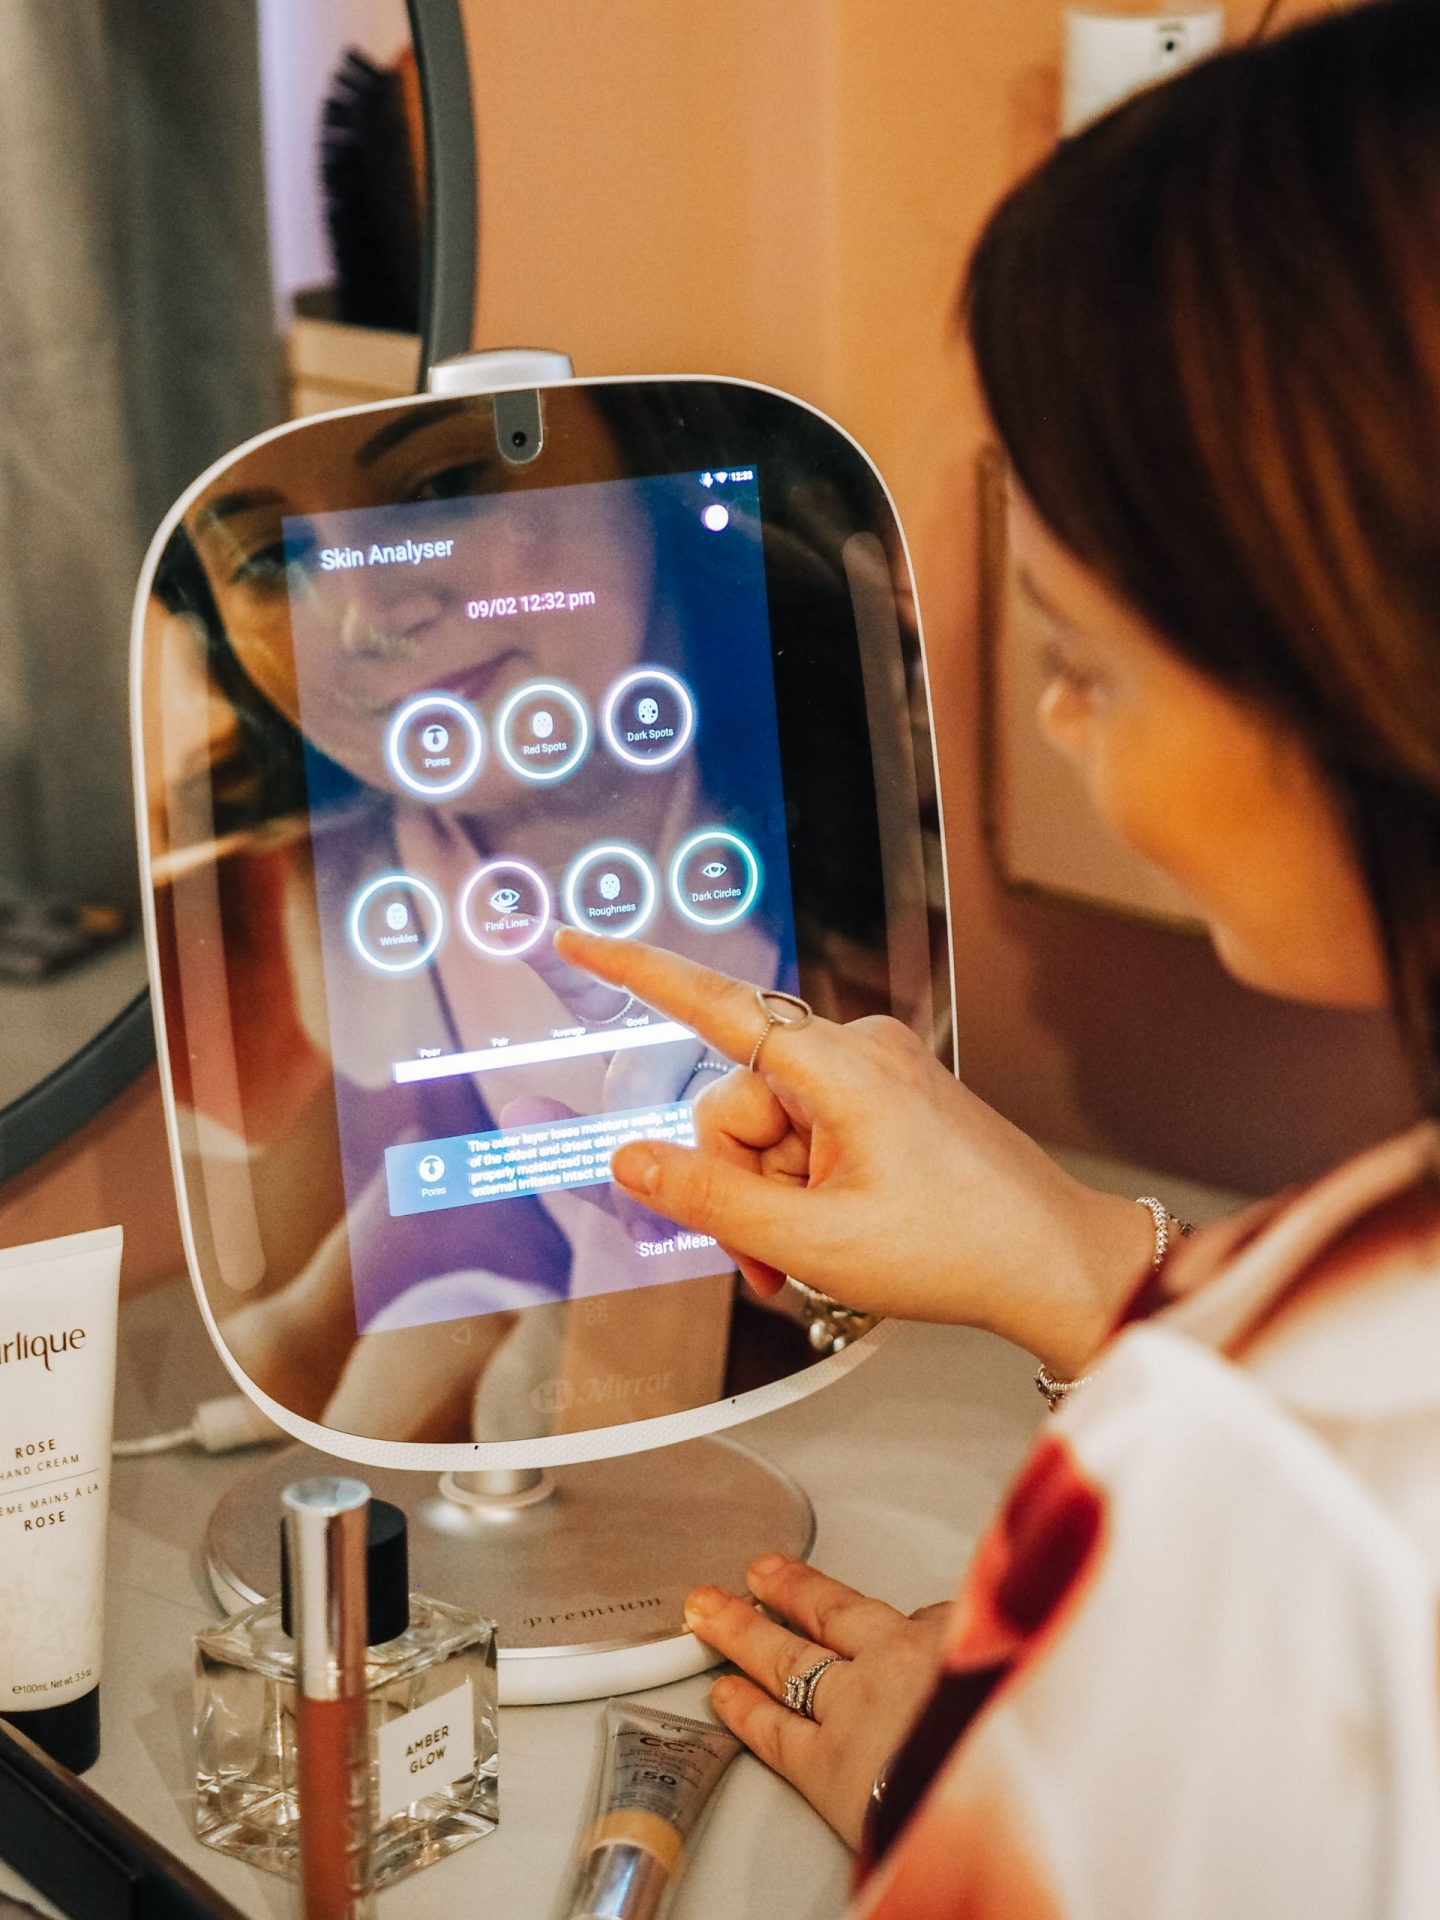 A Smart Mirror For The Ultimate Beauty Junkie: Track Your Skincare Progress & Get Makeup Tips With The HiMirror